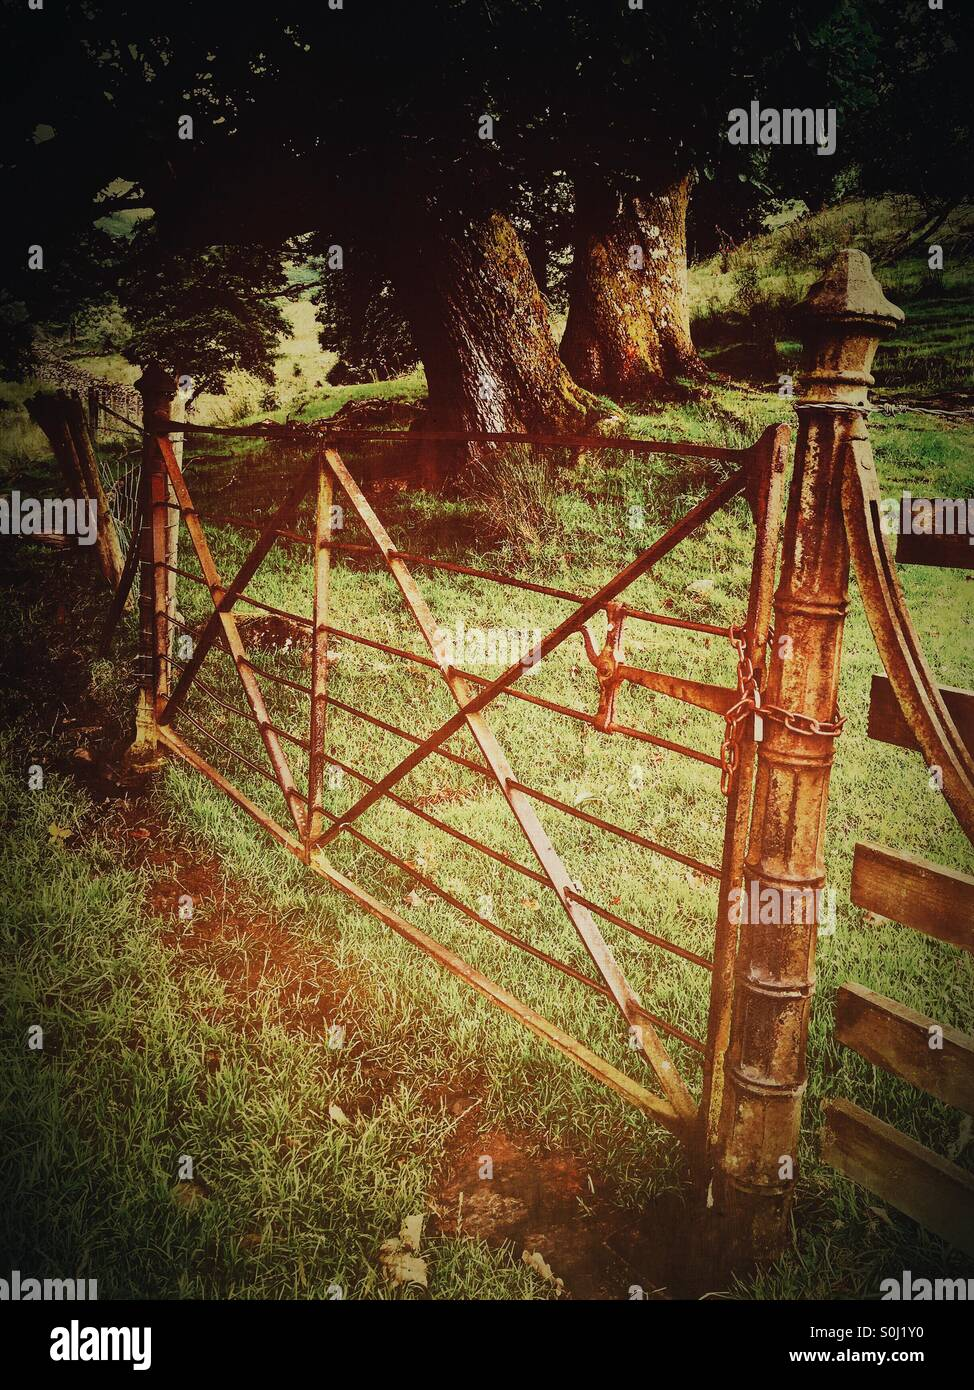 Ornate Victorian farm gate - Stock Image